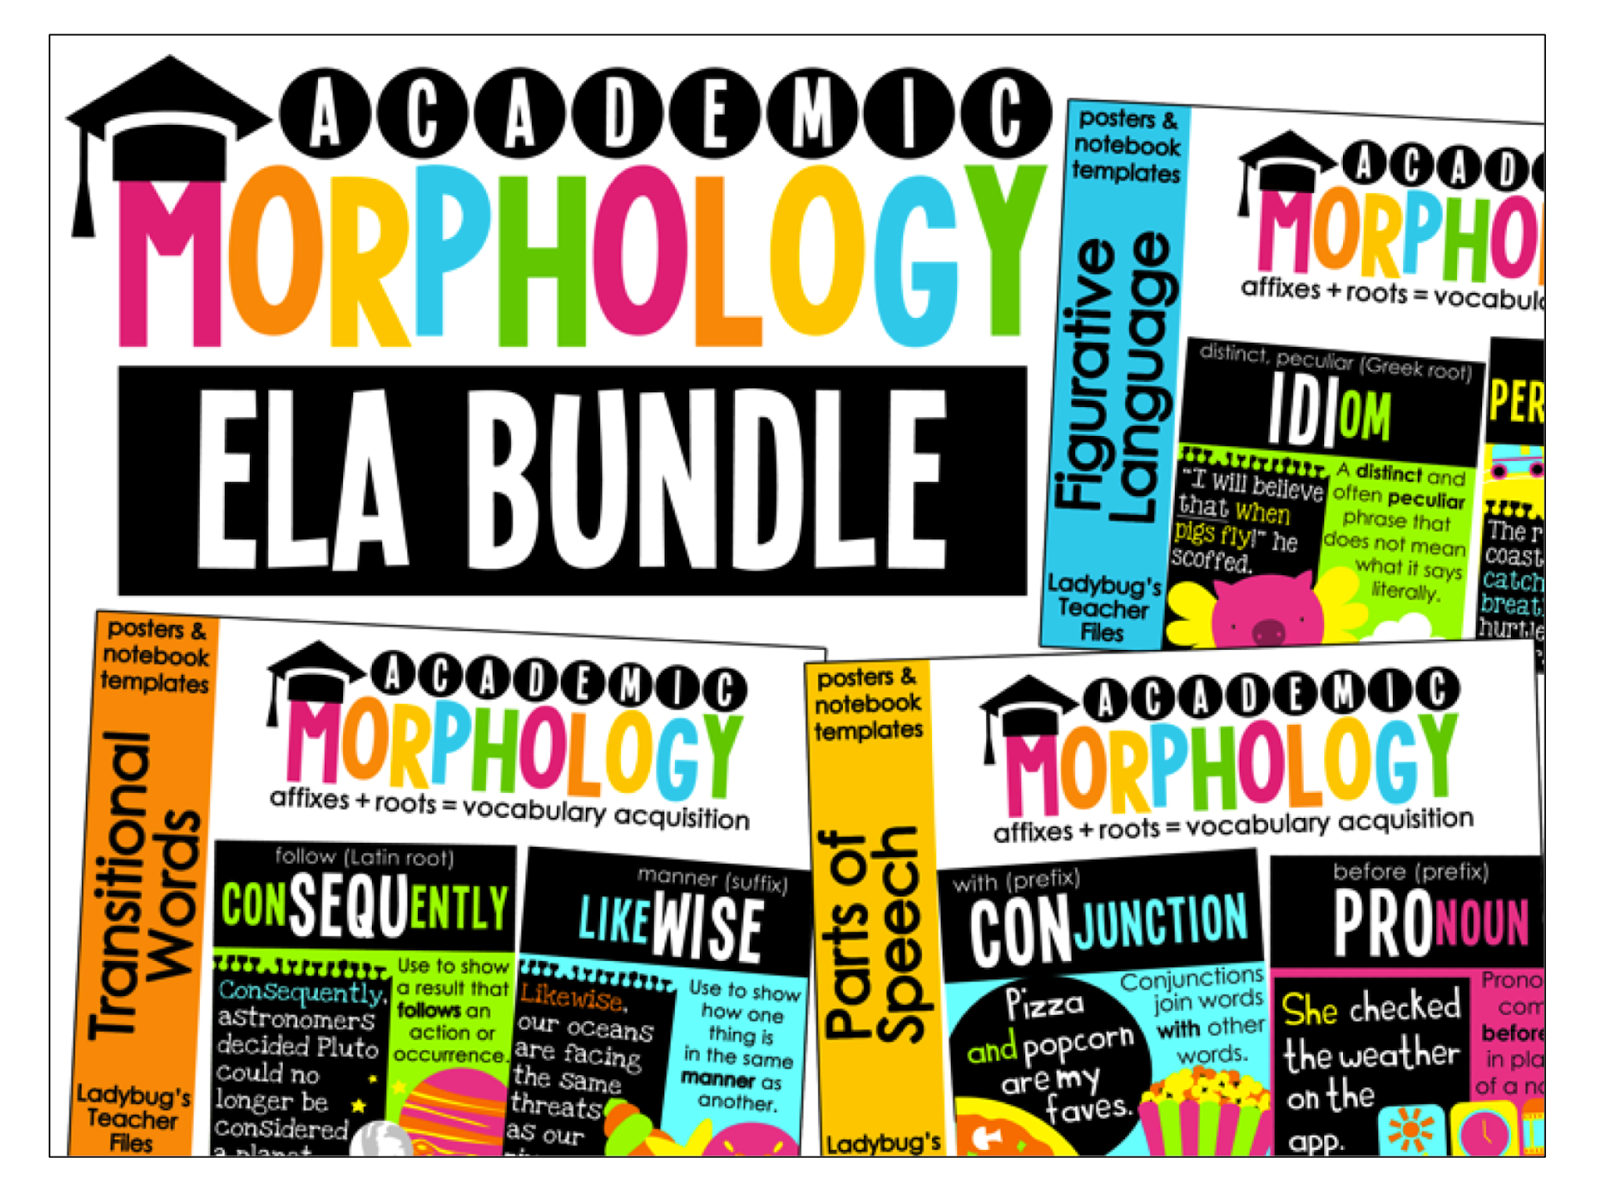 https://www.teacherspayteachers.com/Product/ELA-Posters-Notebook-Templates-Academic-Morphology-Bundle-1627245